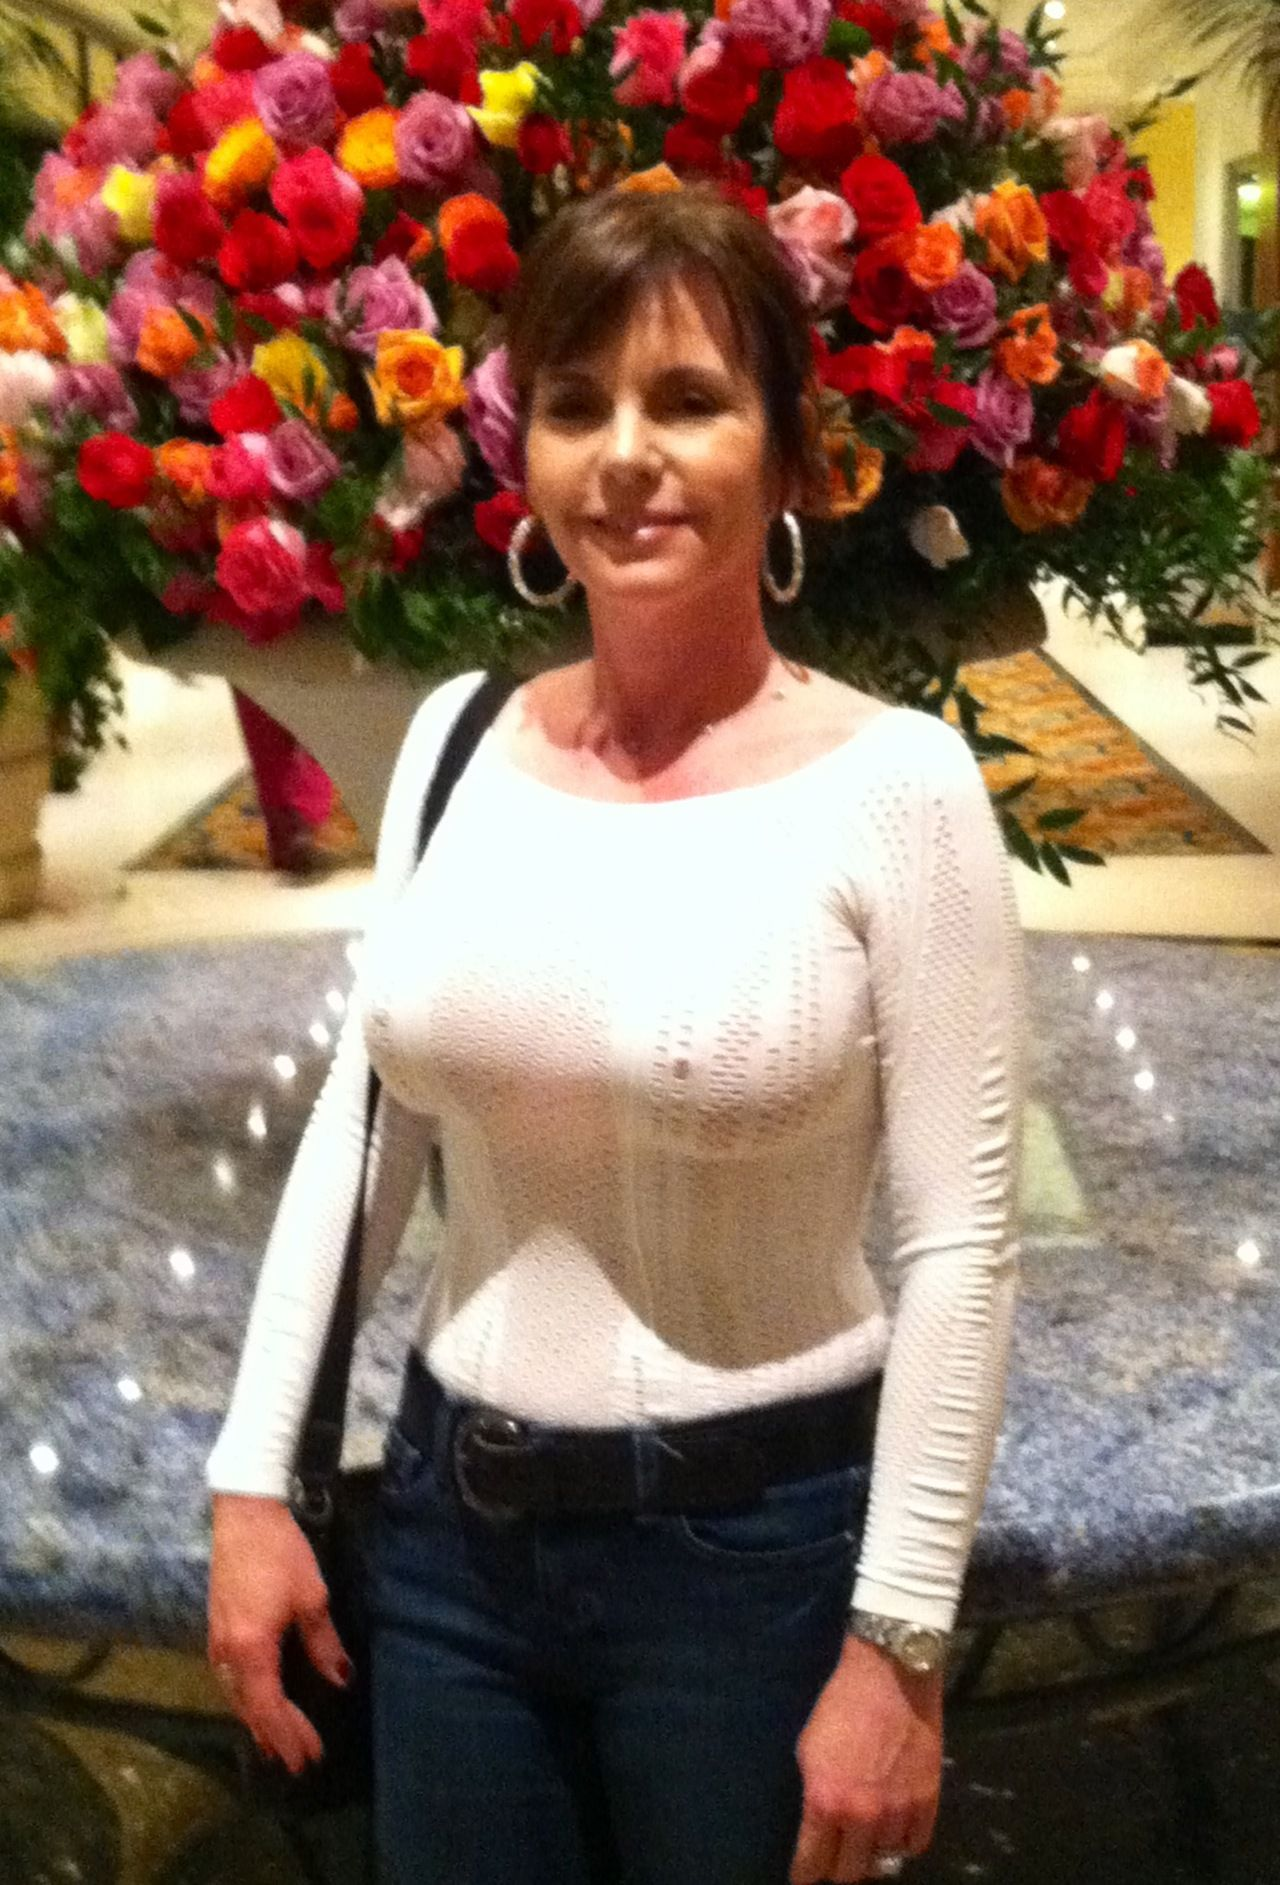 charaa milf women Sexy,silly,mature,women,poses,vagina,pussy,twat,cunt,moms,milf,sex,older,mommy,pics,skilled,mistress my best mature mistress: good granny pictures granny pics sex.